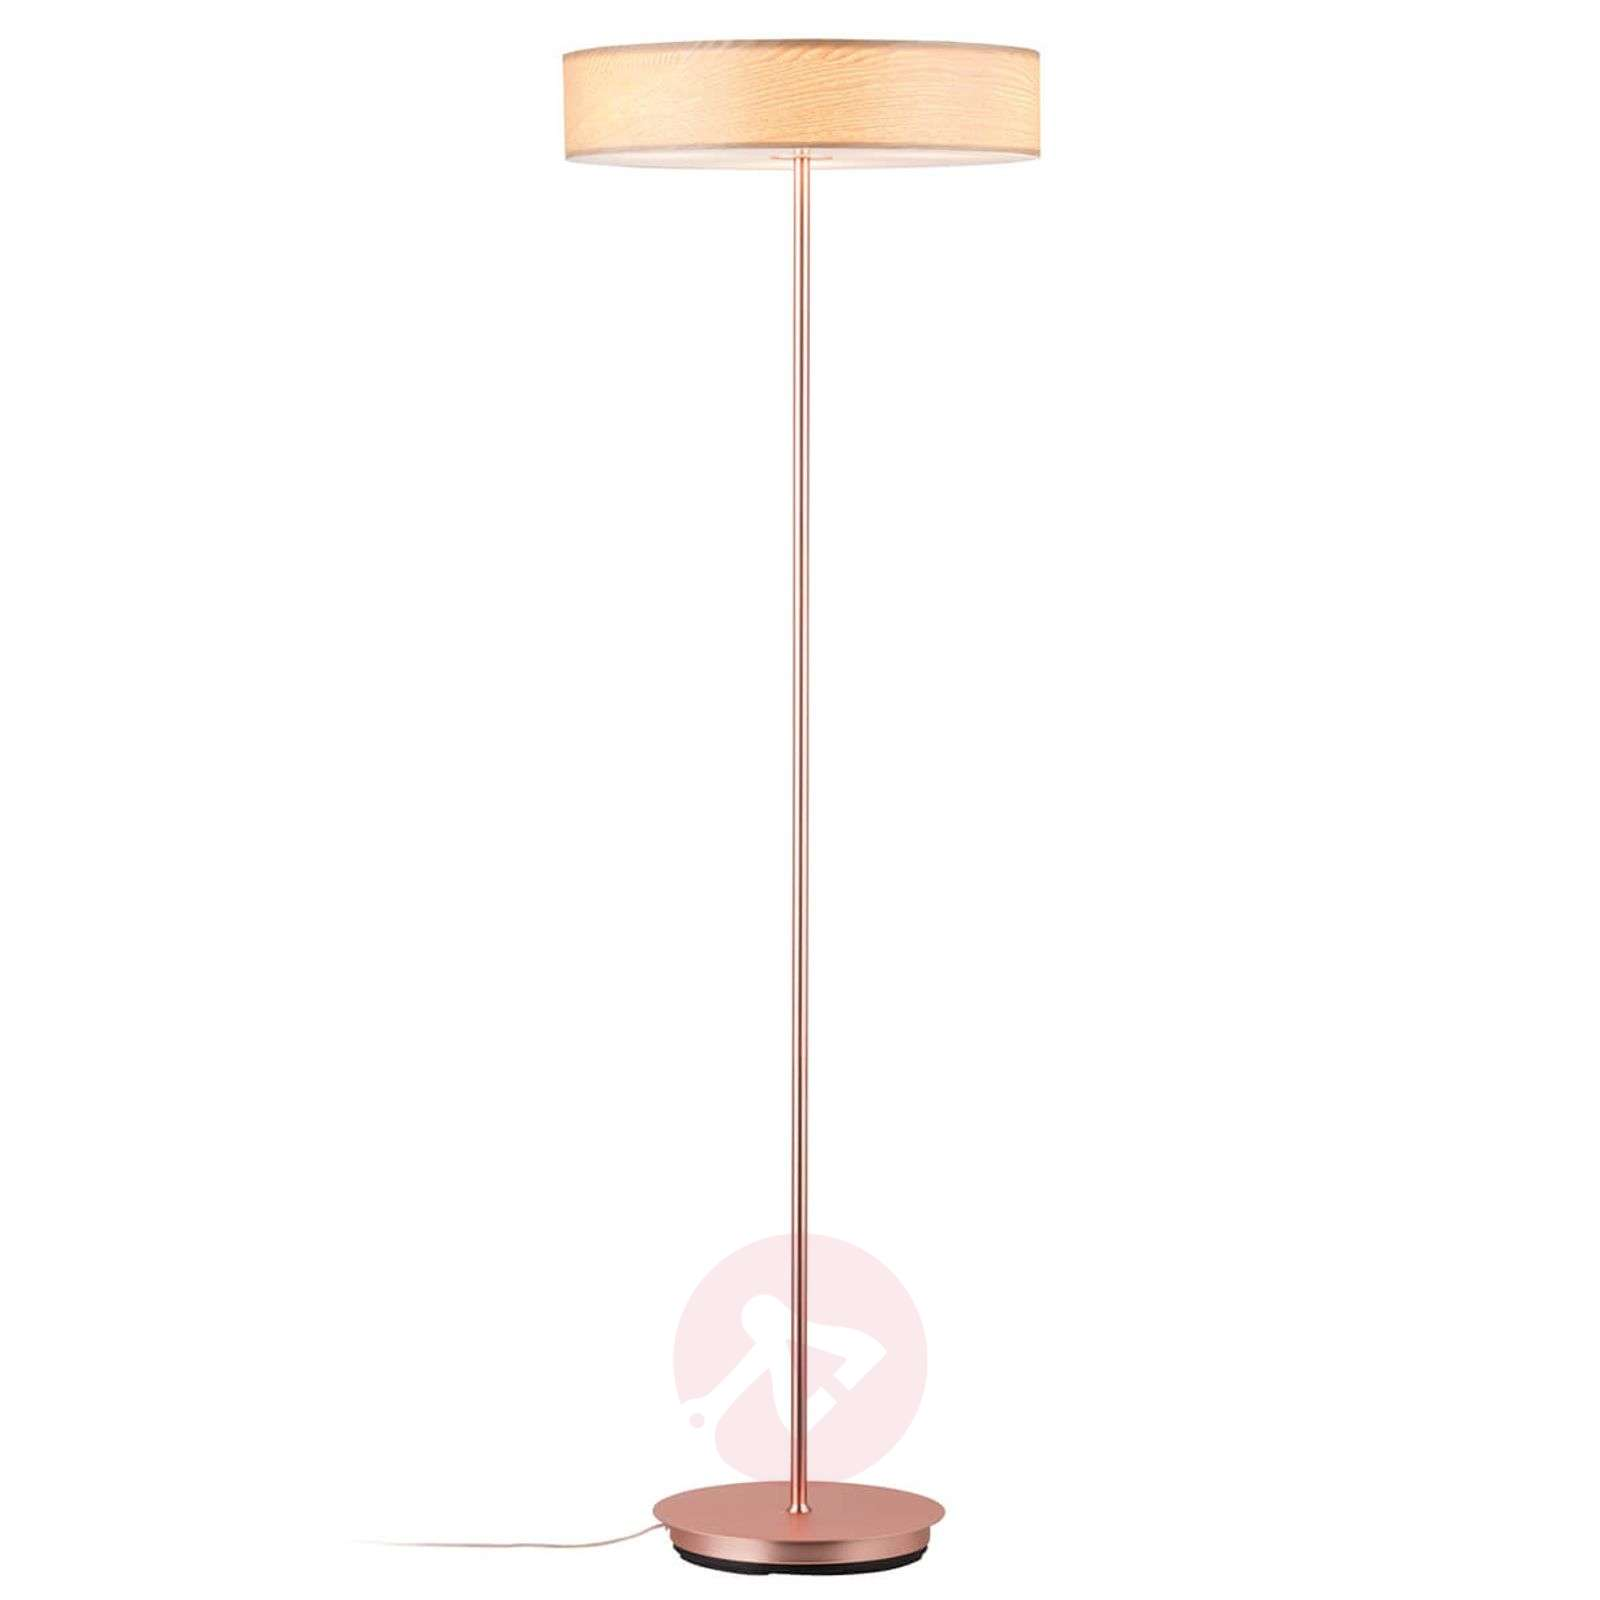 Decorative floor lamp liska with wooden lampshade lights decorative floor lamp liska with wooden lampshade 7601086 02 aloadofball Image collections